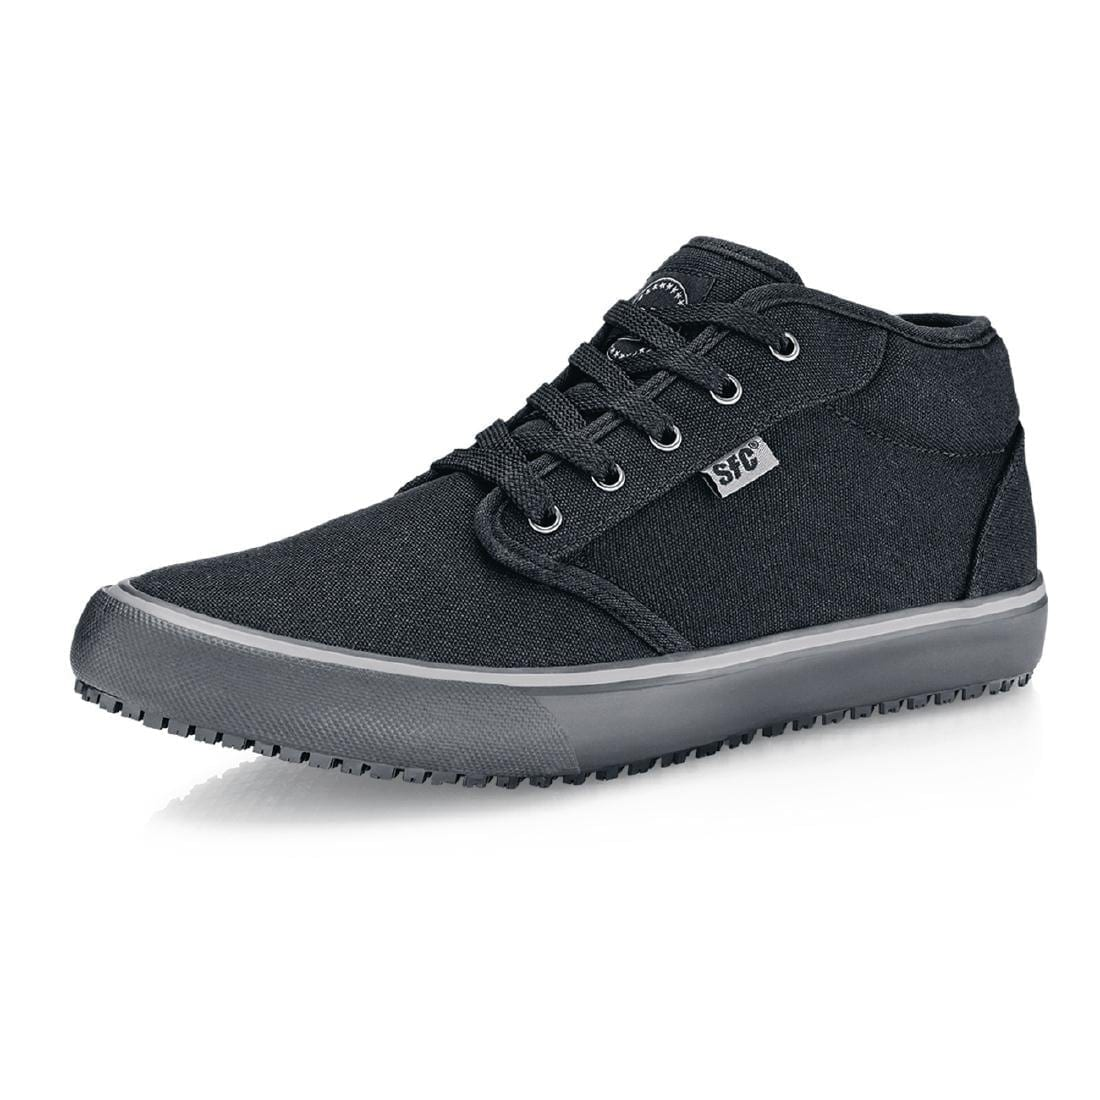 Shoes For Crews Coated Canvas Lace up Boot - Size 38-0